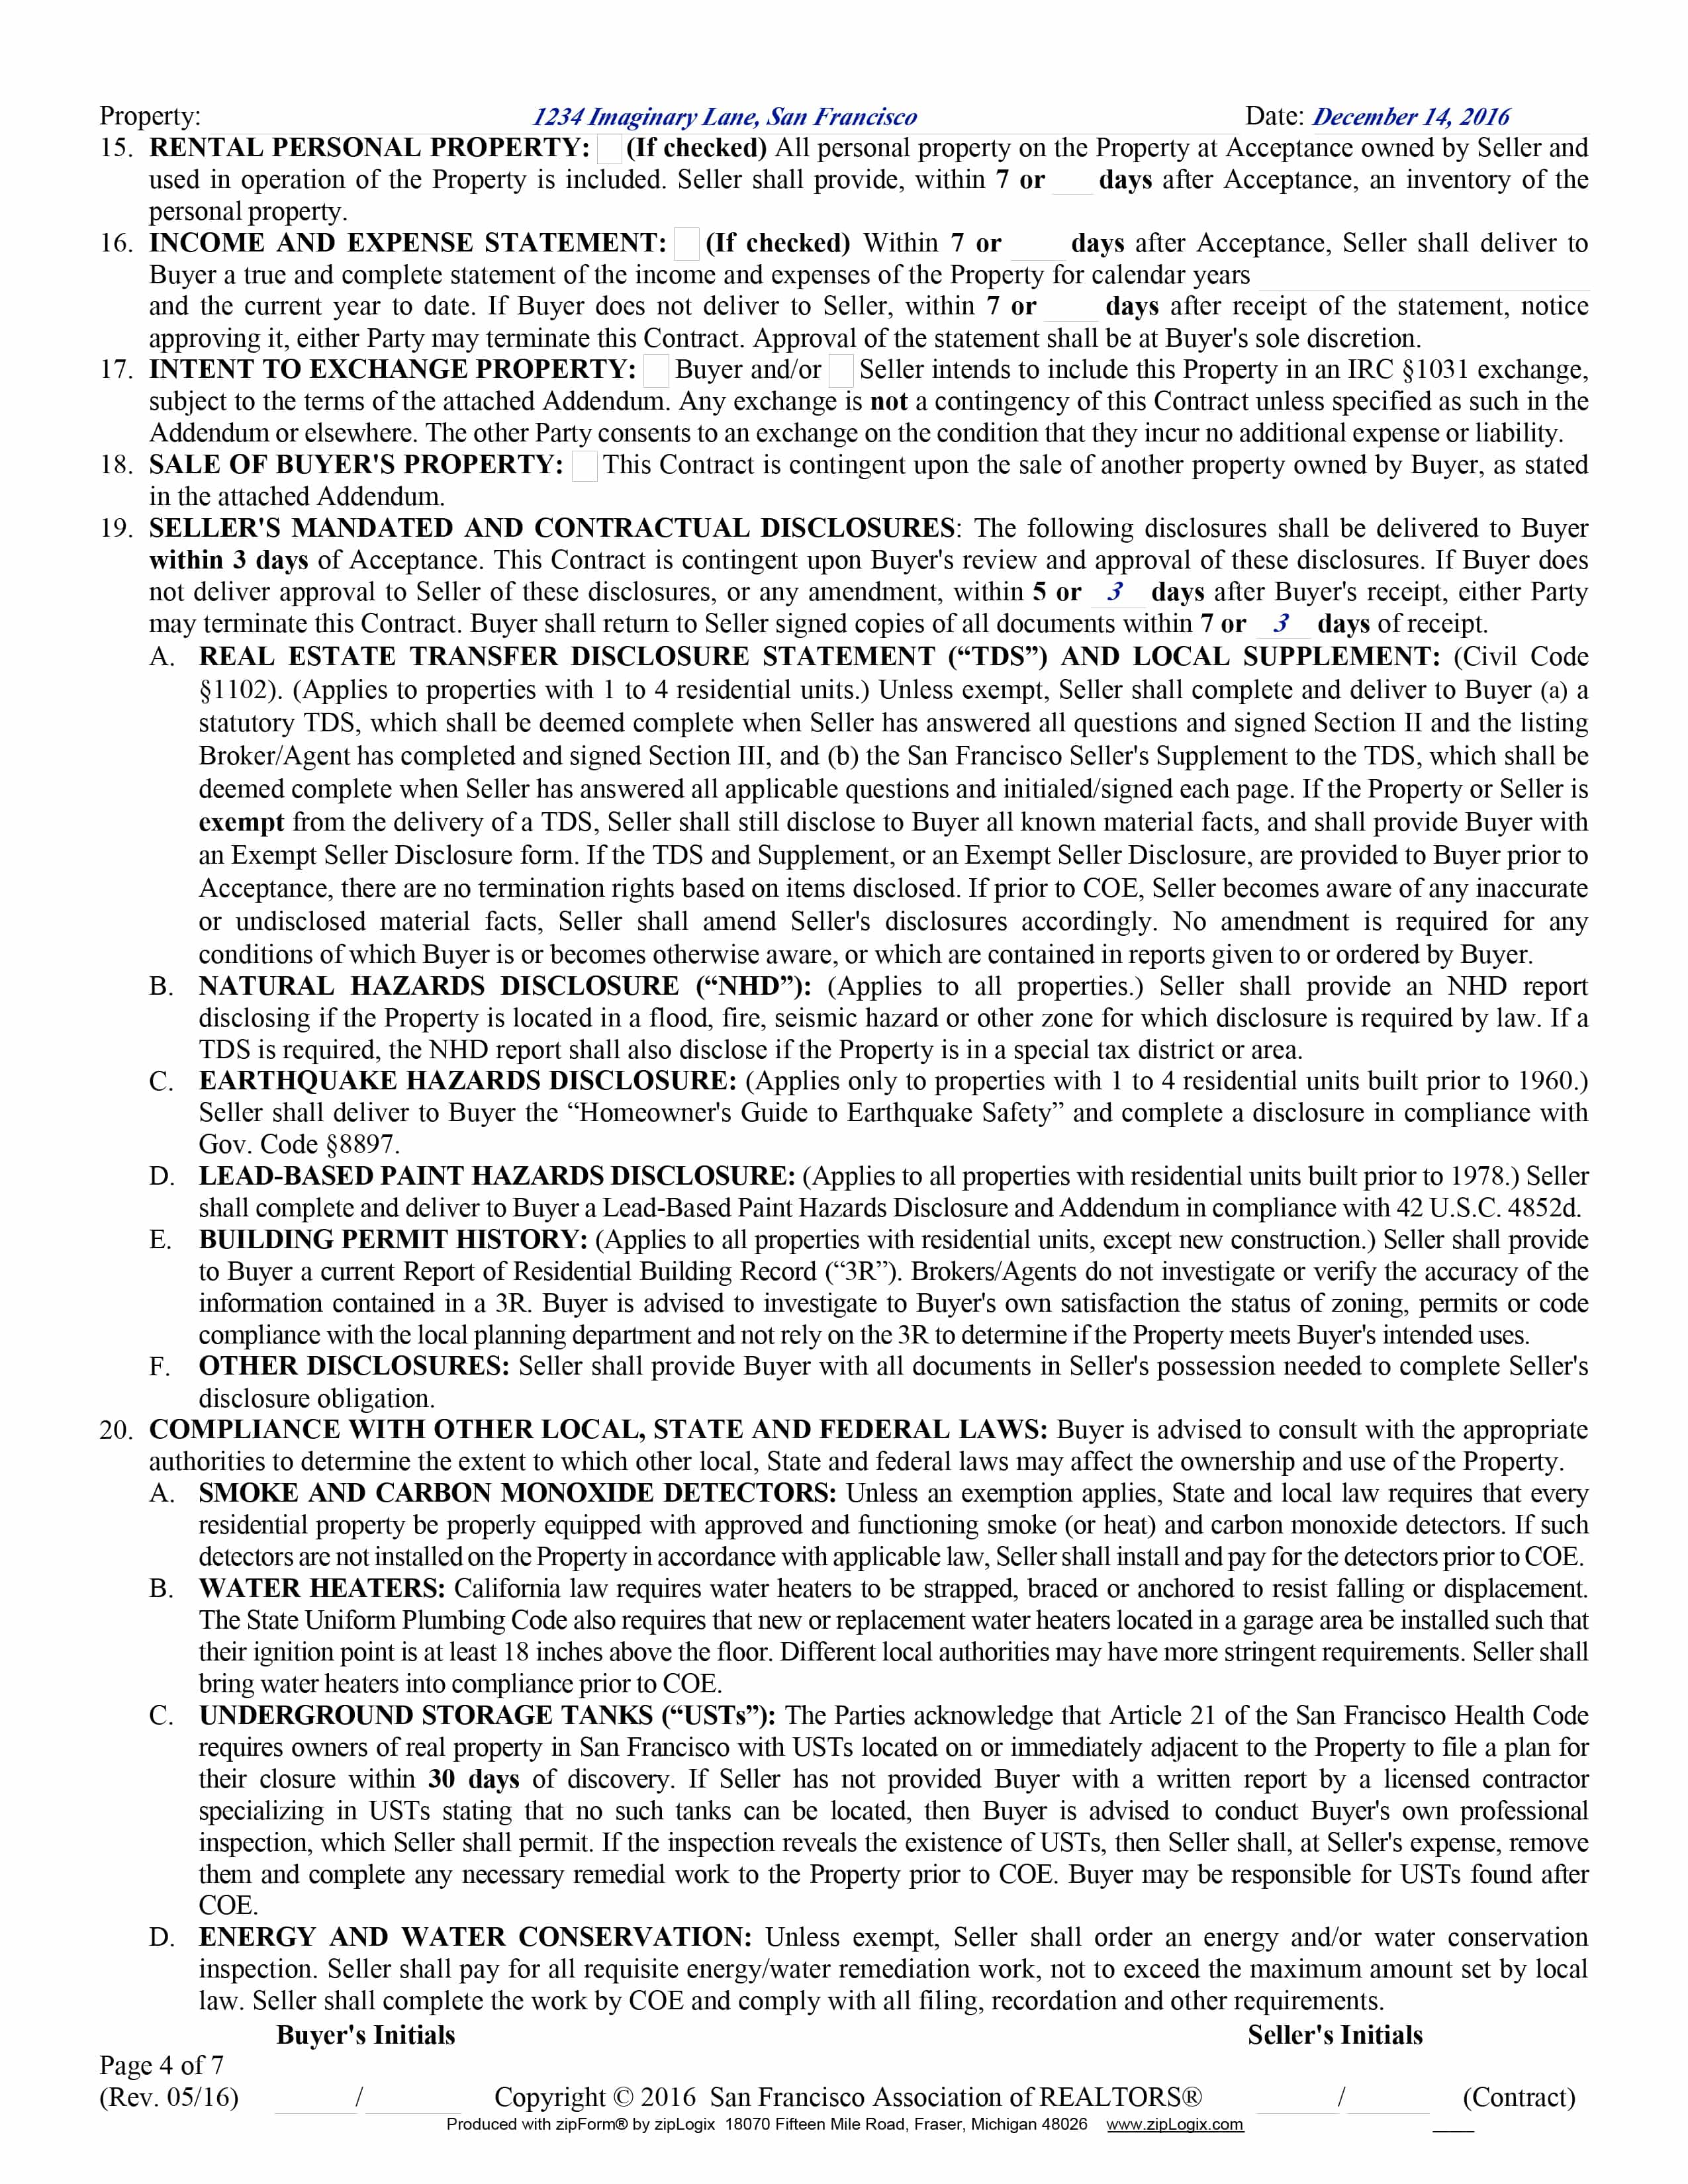 Doc575709 Property Purchase Agreement Template Real Estate – Purchase Agreement Contract